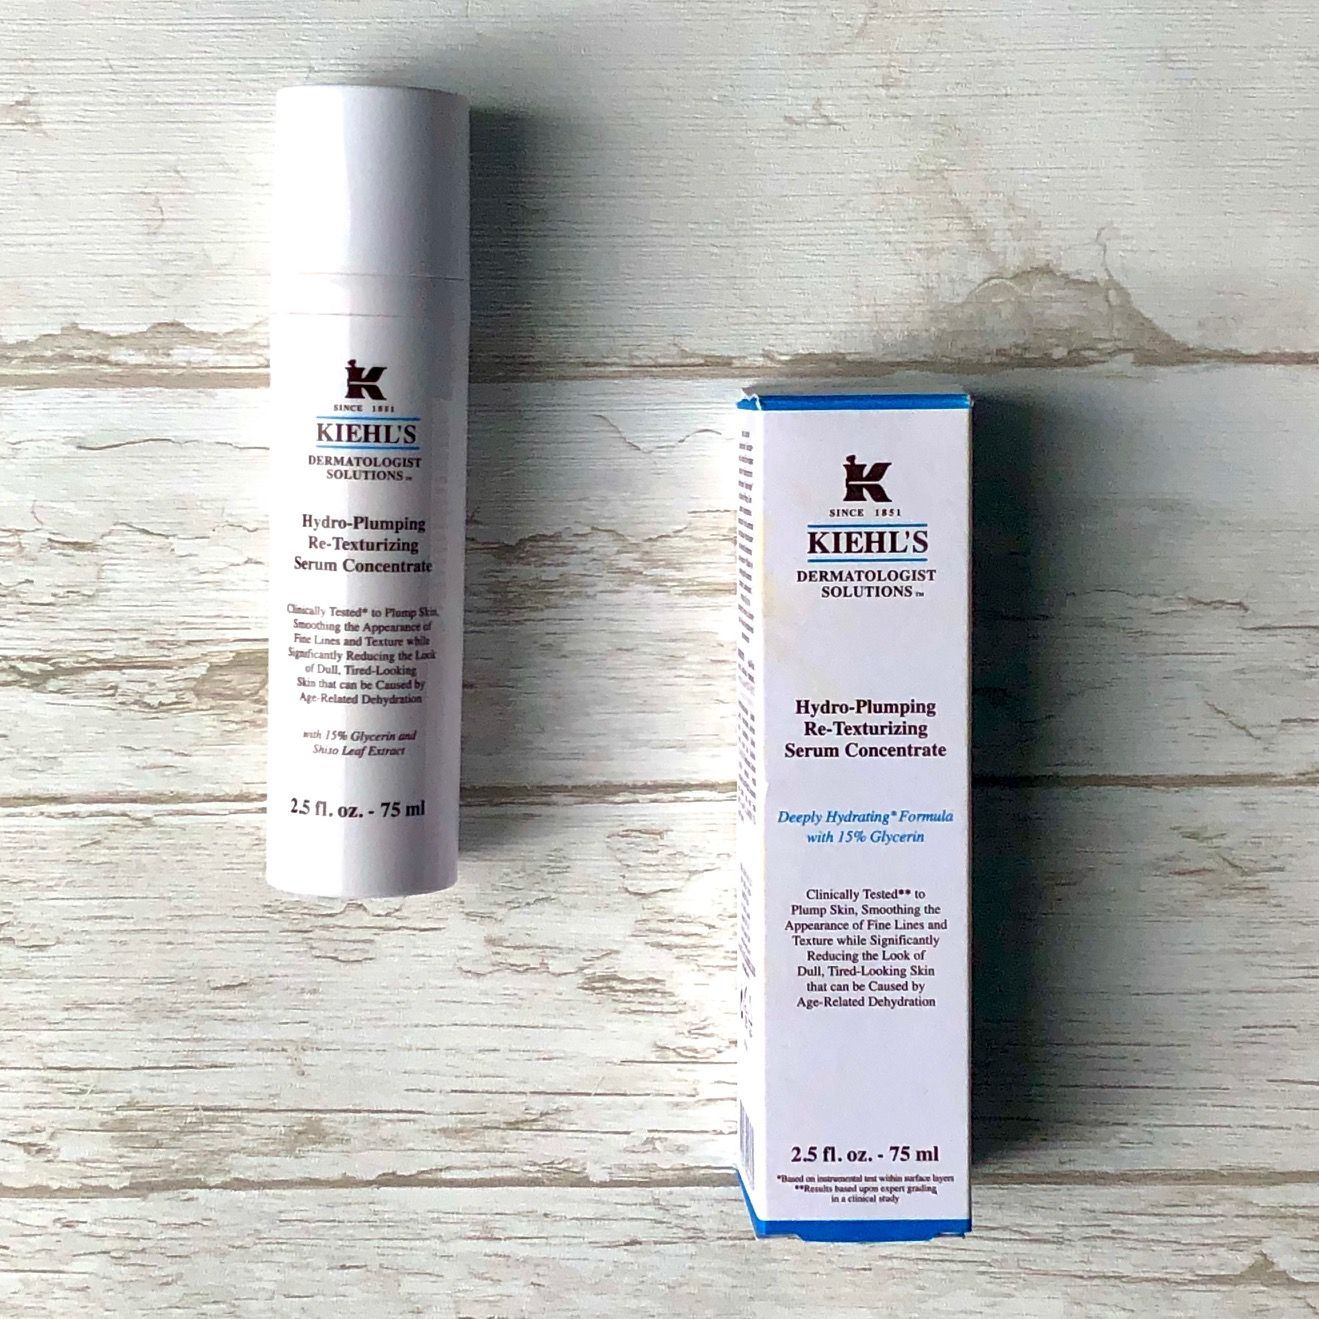 Hydro-Plumping Re-Texturizing Serum Concentrate